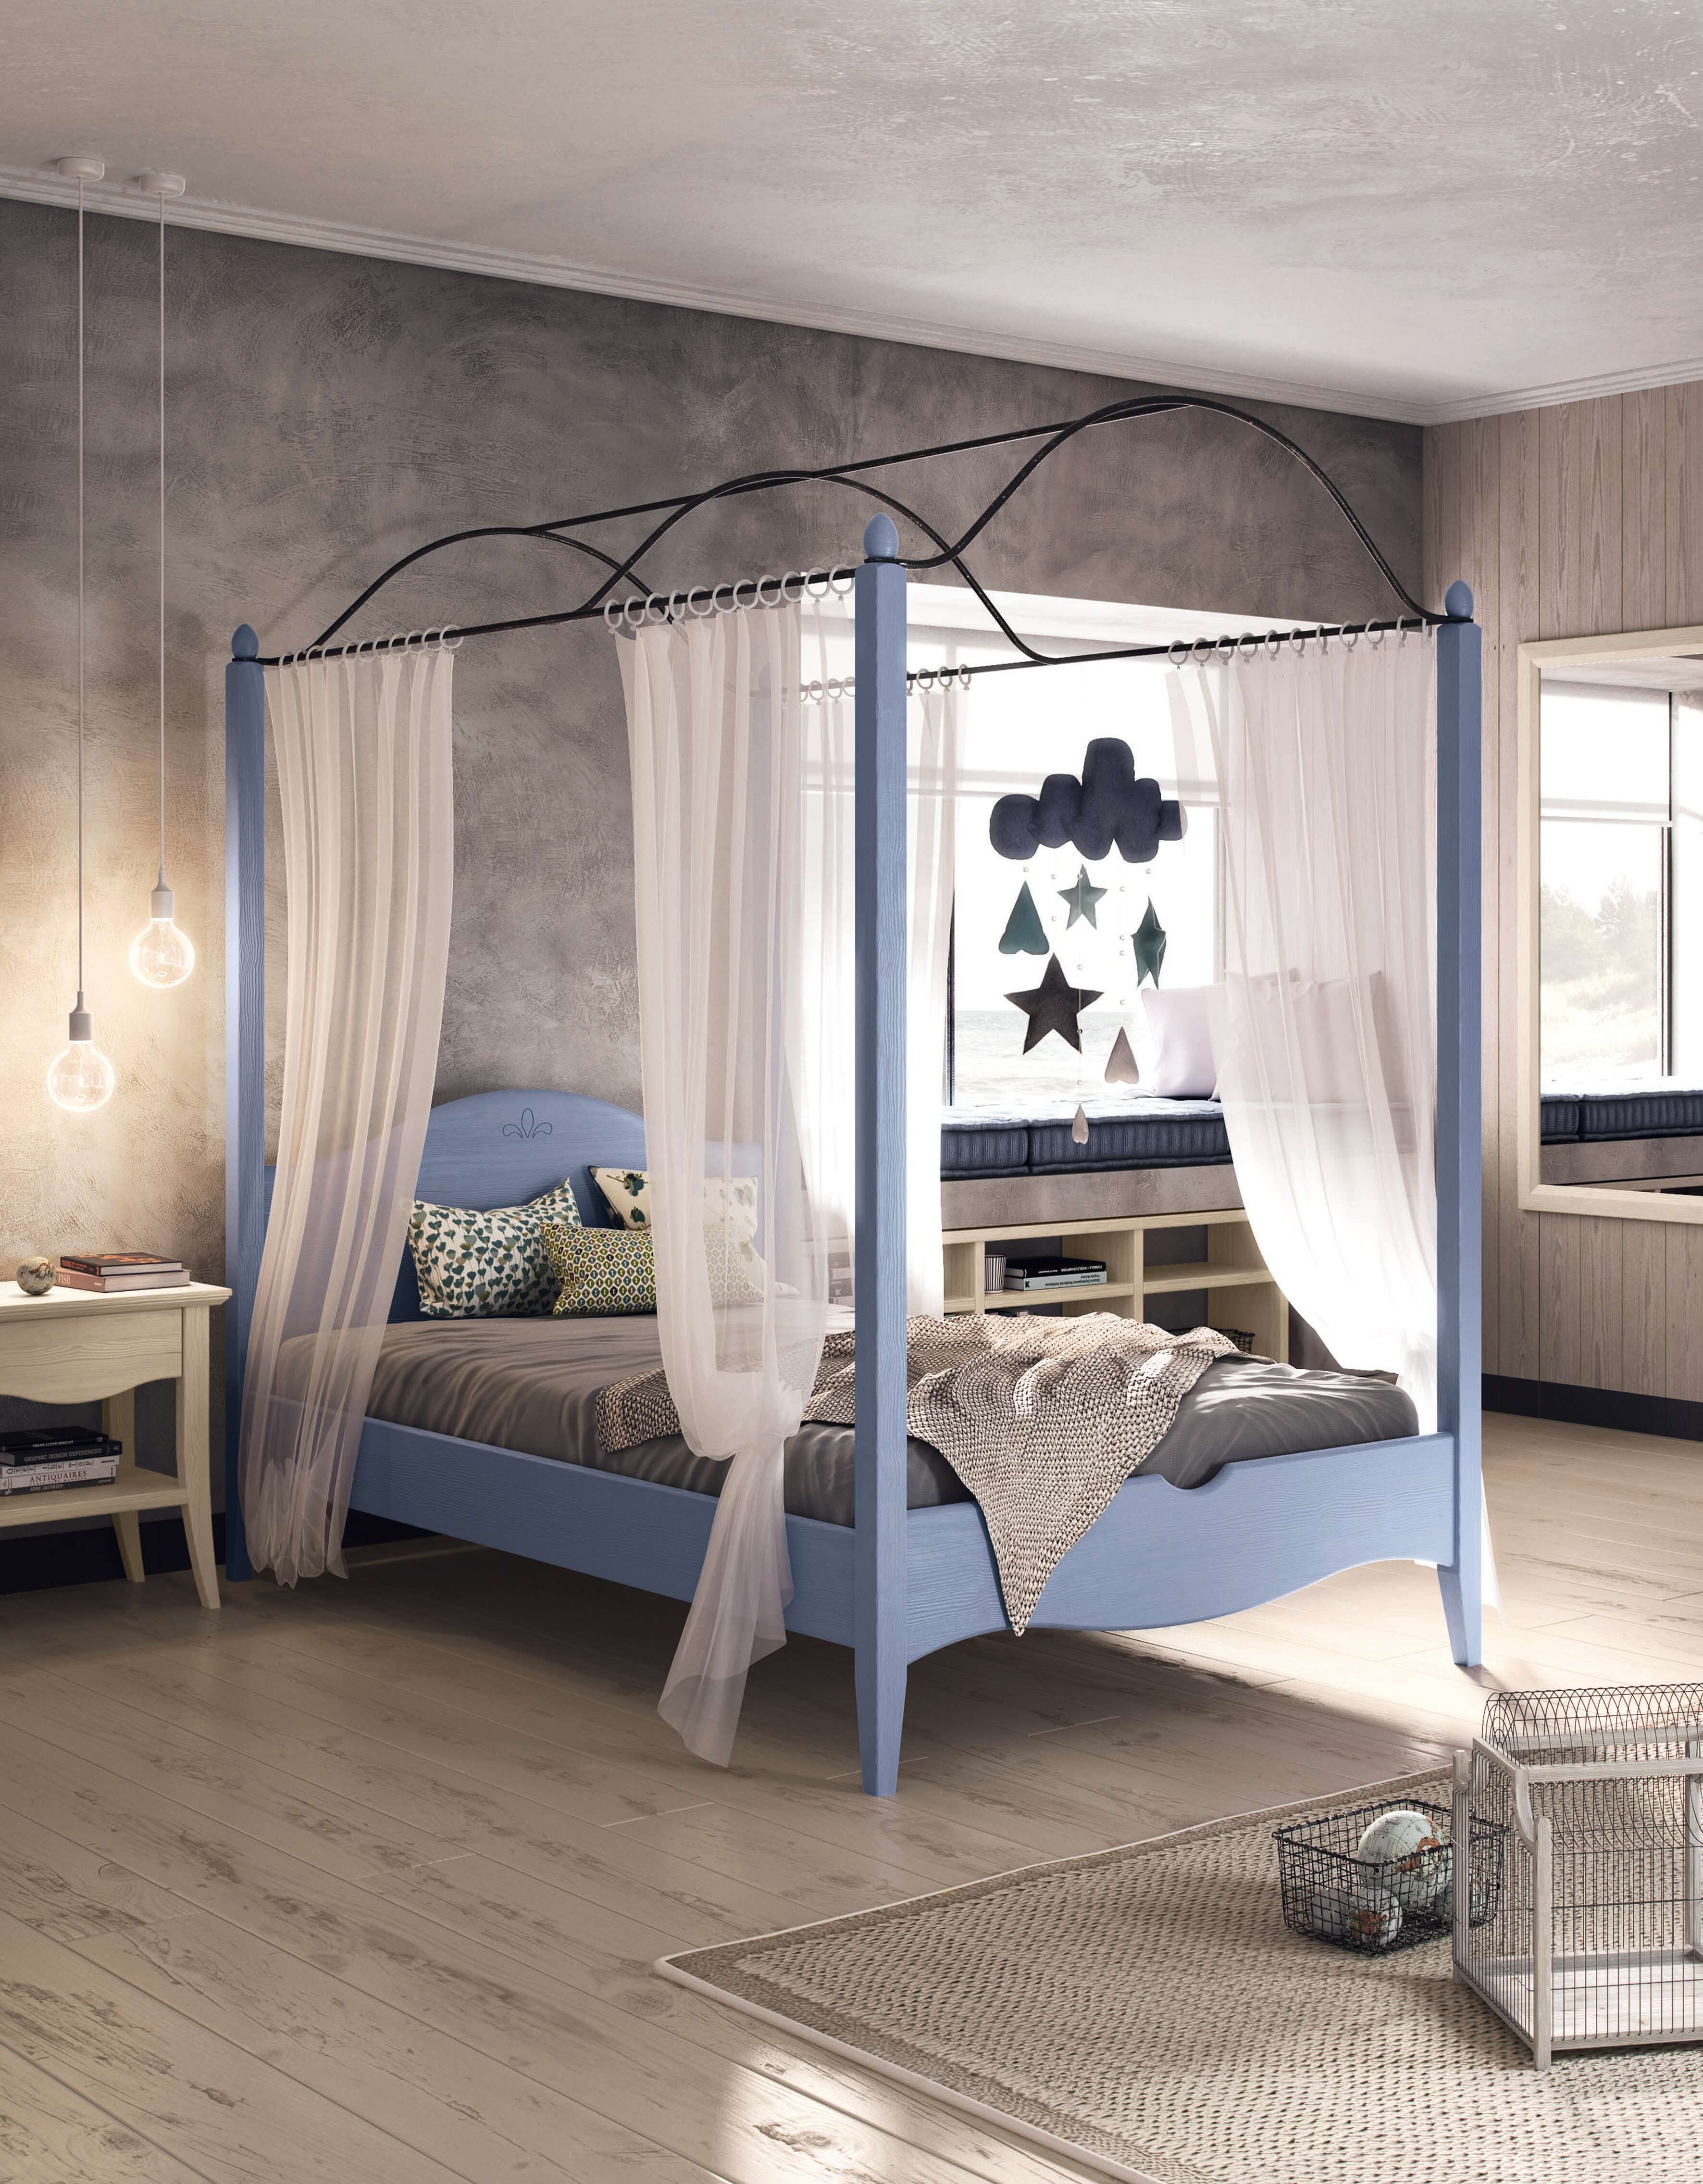 https://www.mobiliacolori.it/wp-content/uploads/2018/08/letto-romantico-baldacchino.jpg